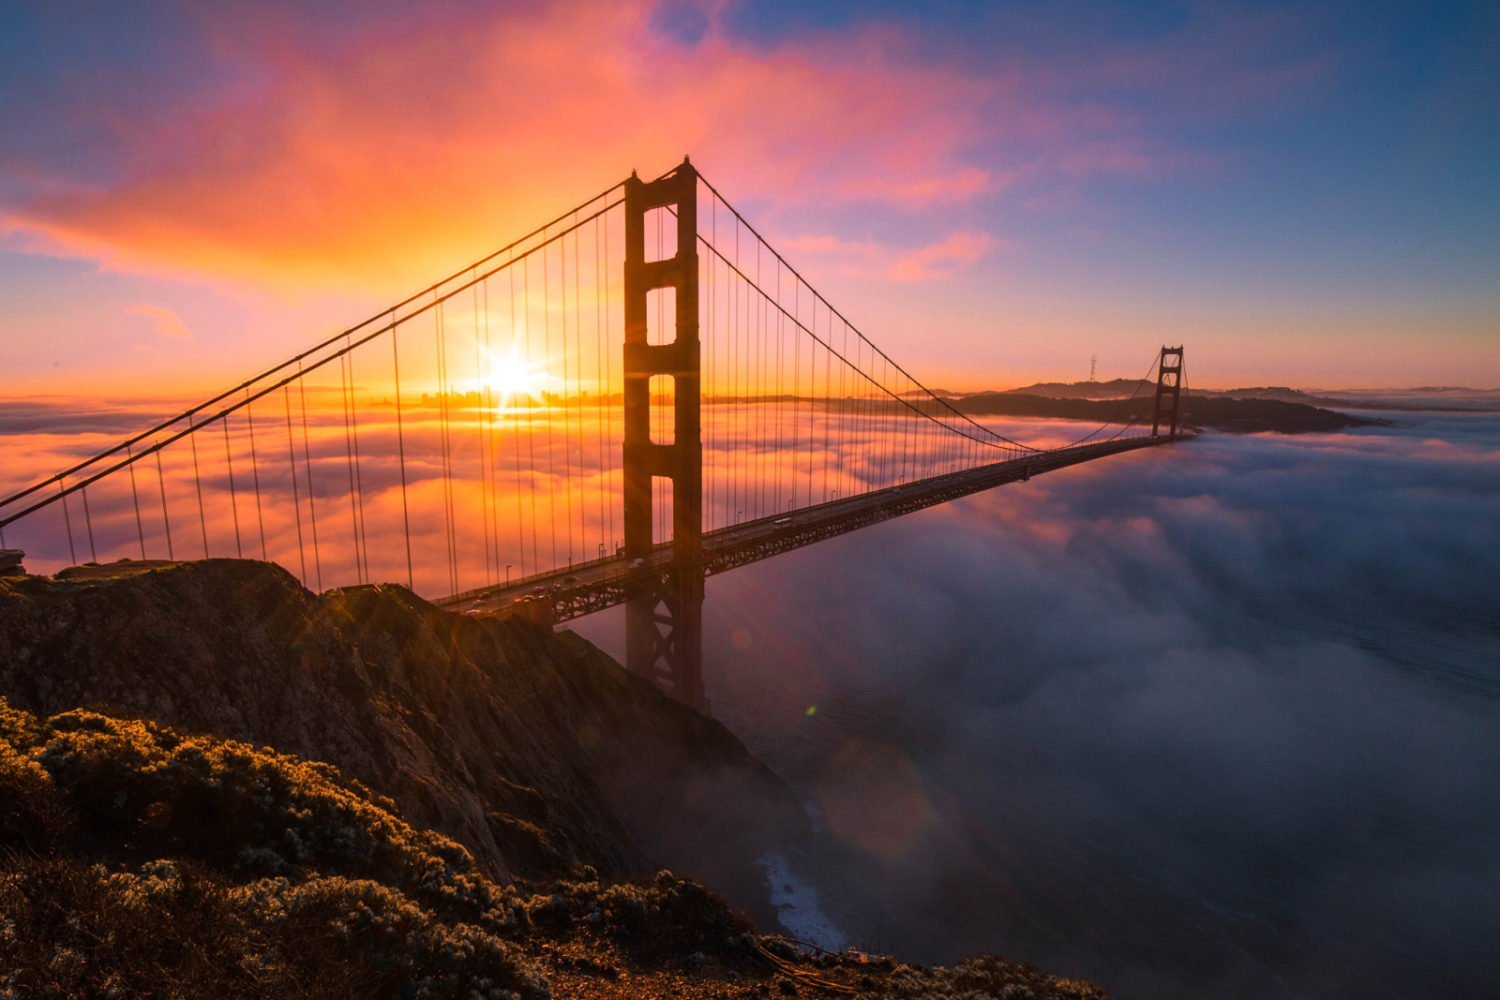 20 Sublime Photos Documenting A Day in the Life of the Golden Gate Bridge